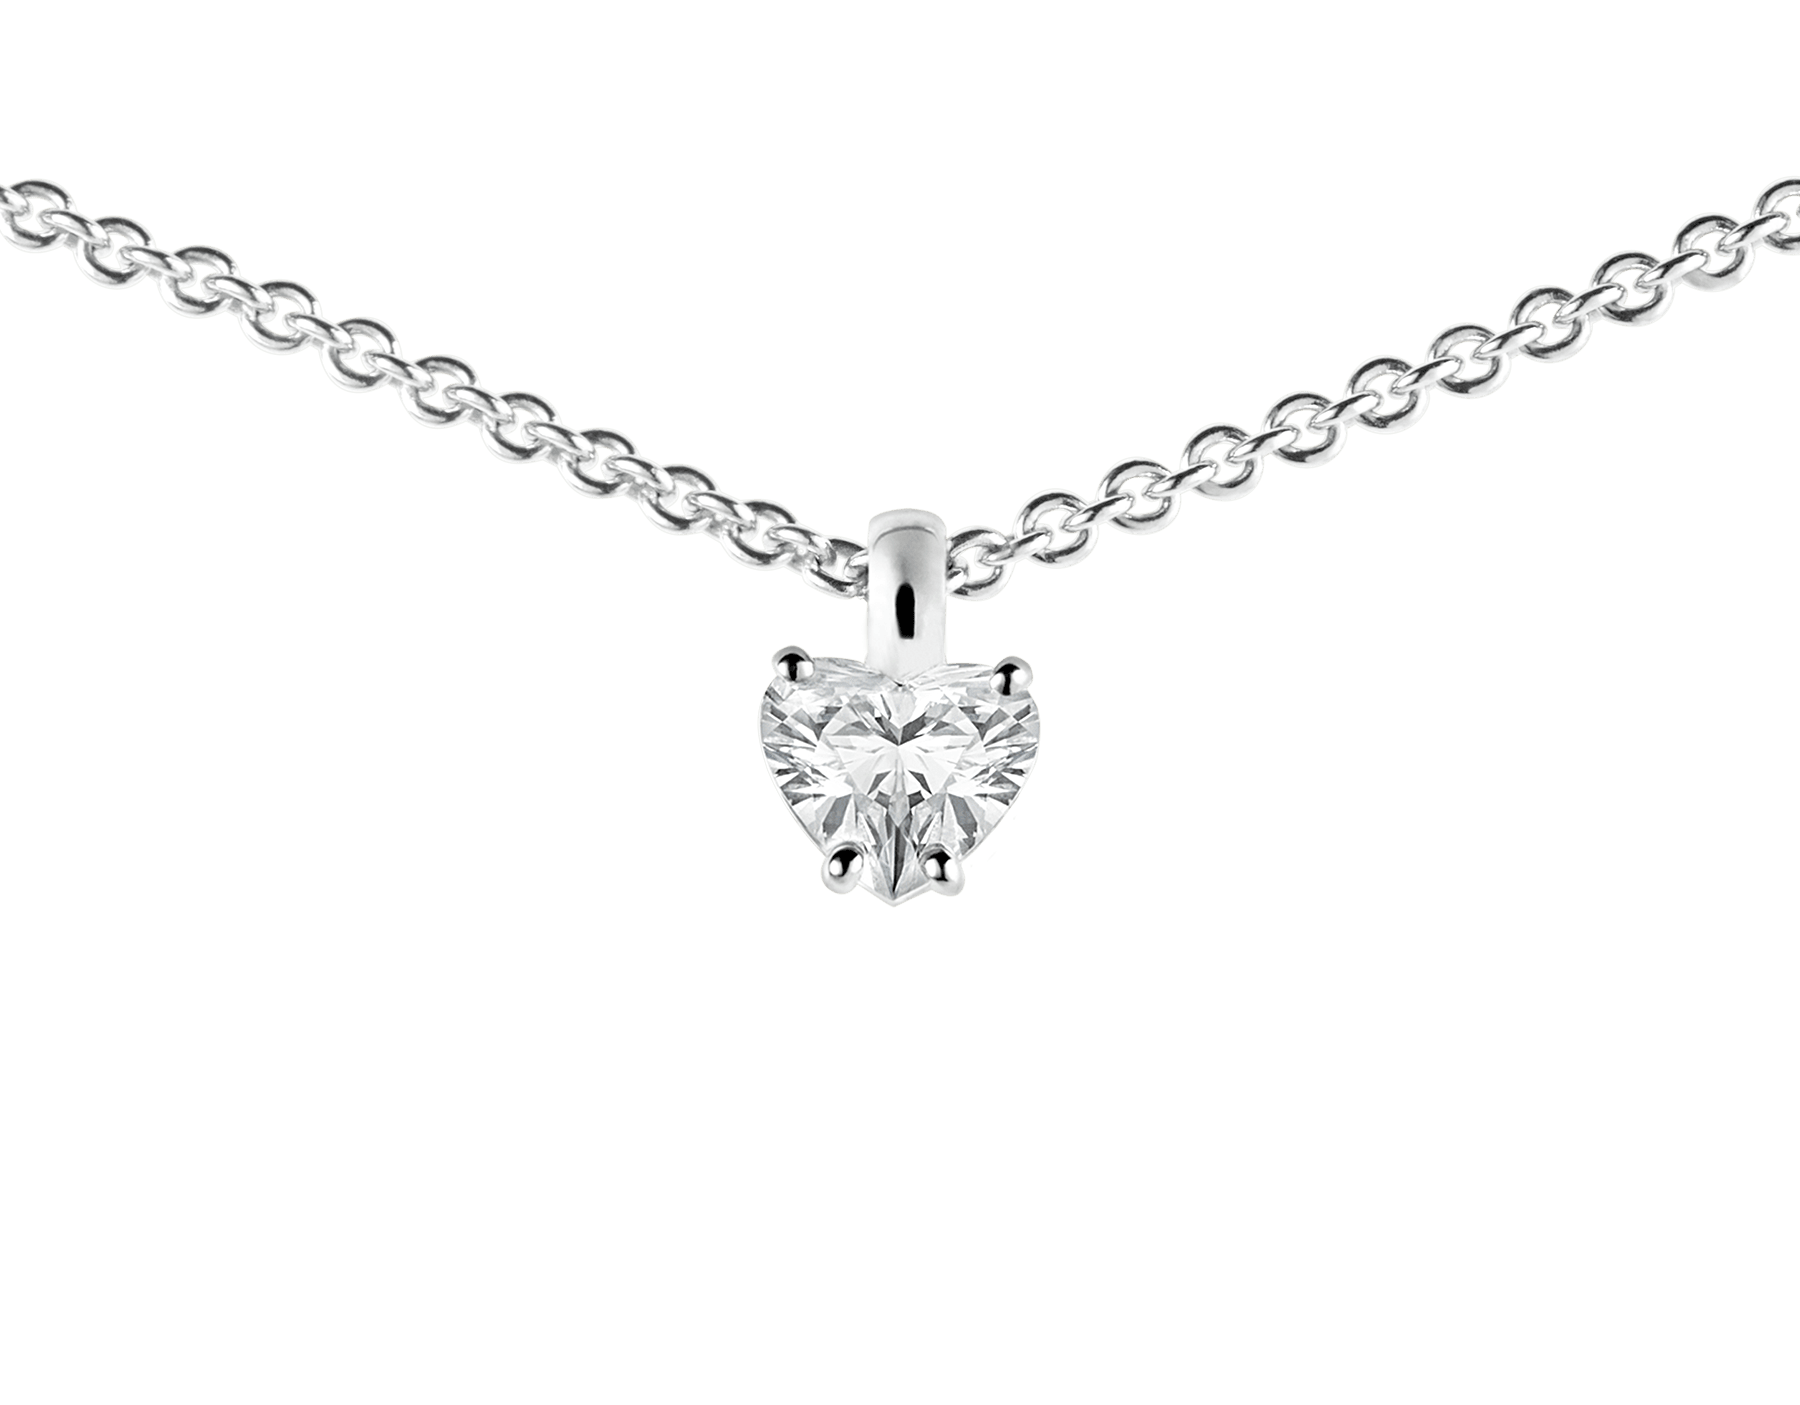 Griffe 18 kt white gold pendant with heart cut diamond and 18 kt white gold chain 338204 image 2